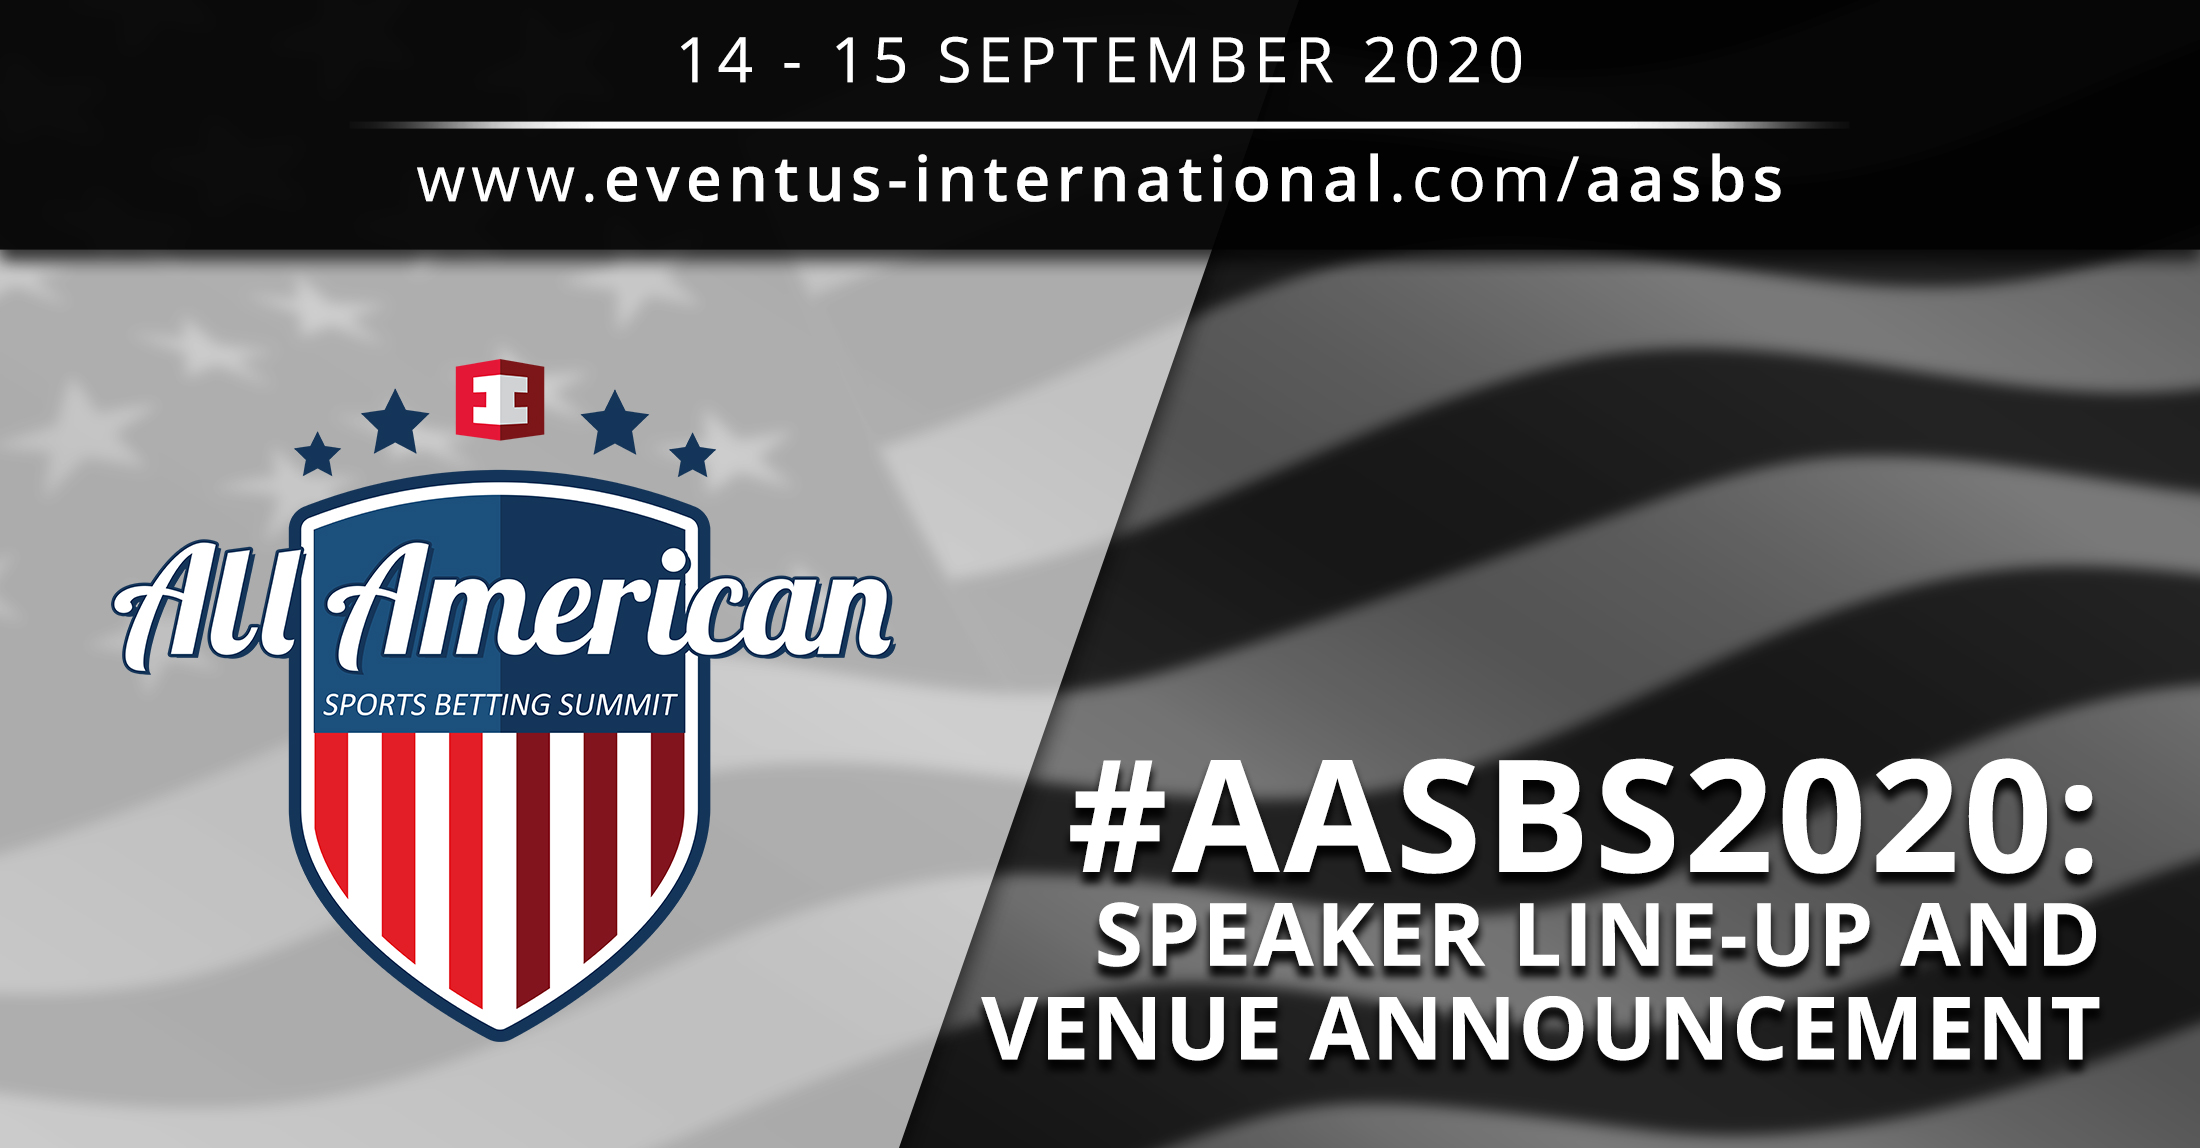 AASBS 2020: All American Sports Betting Summit: Betting Trends Plus Technological Innovations